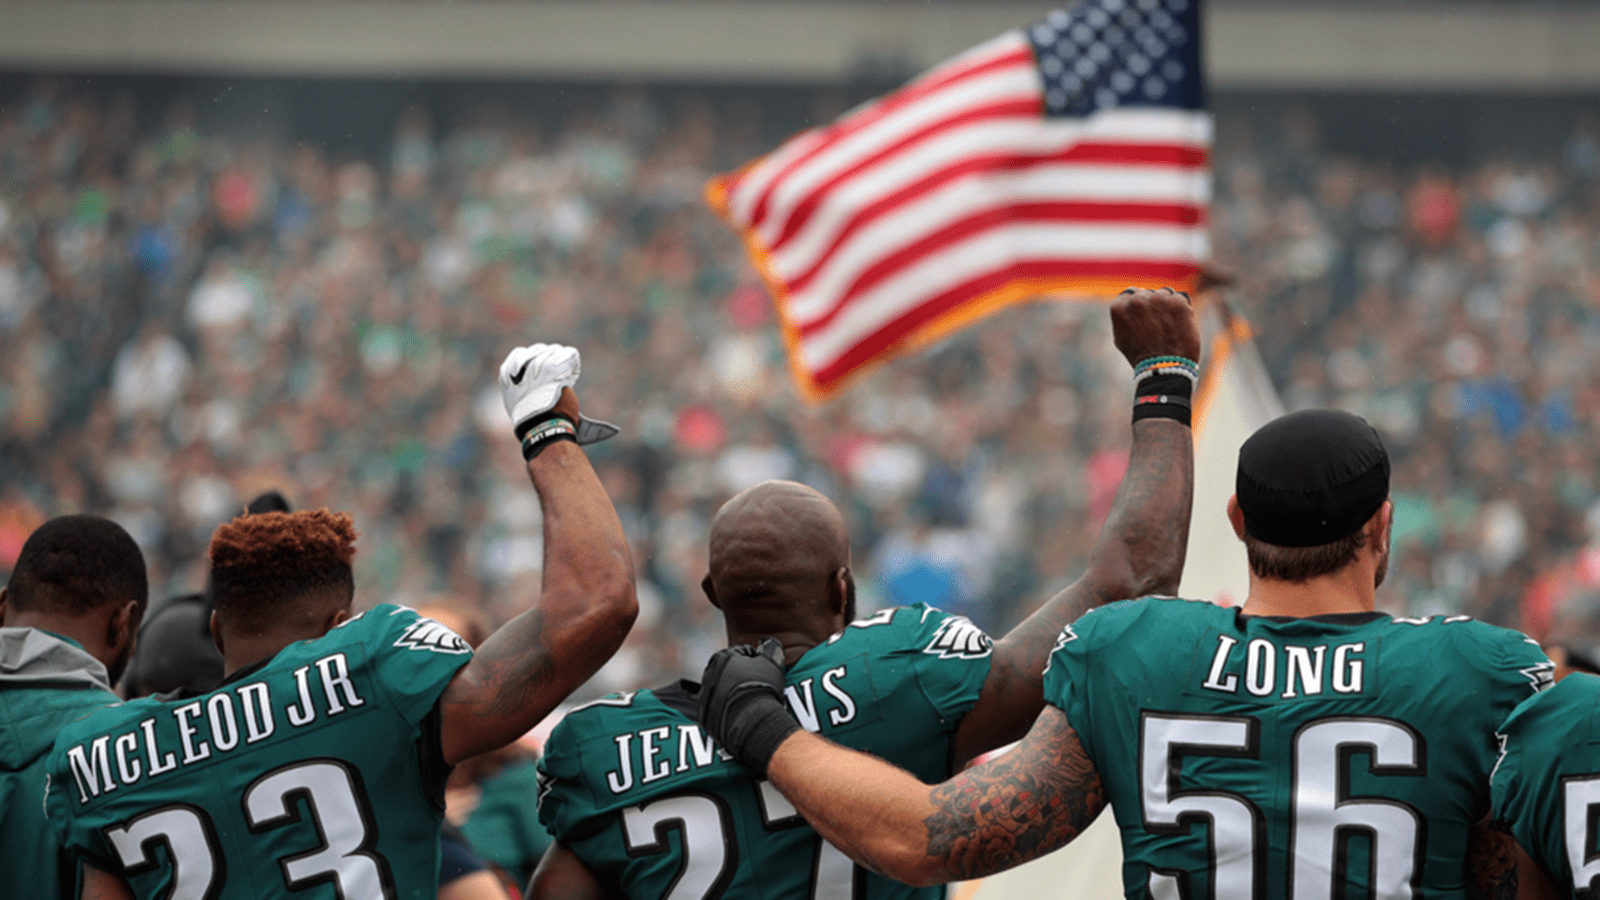 Trump Disinvites Philadelphia Eagles From White House Over National Anthem Dispute